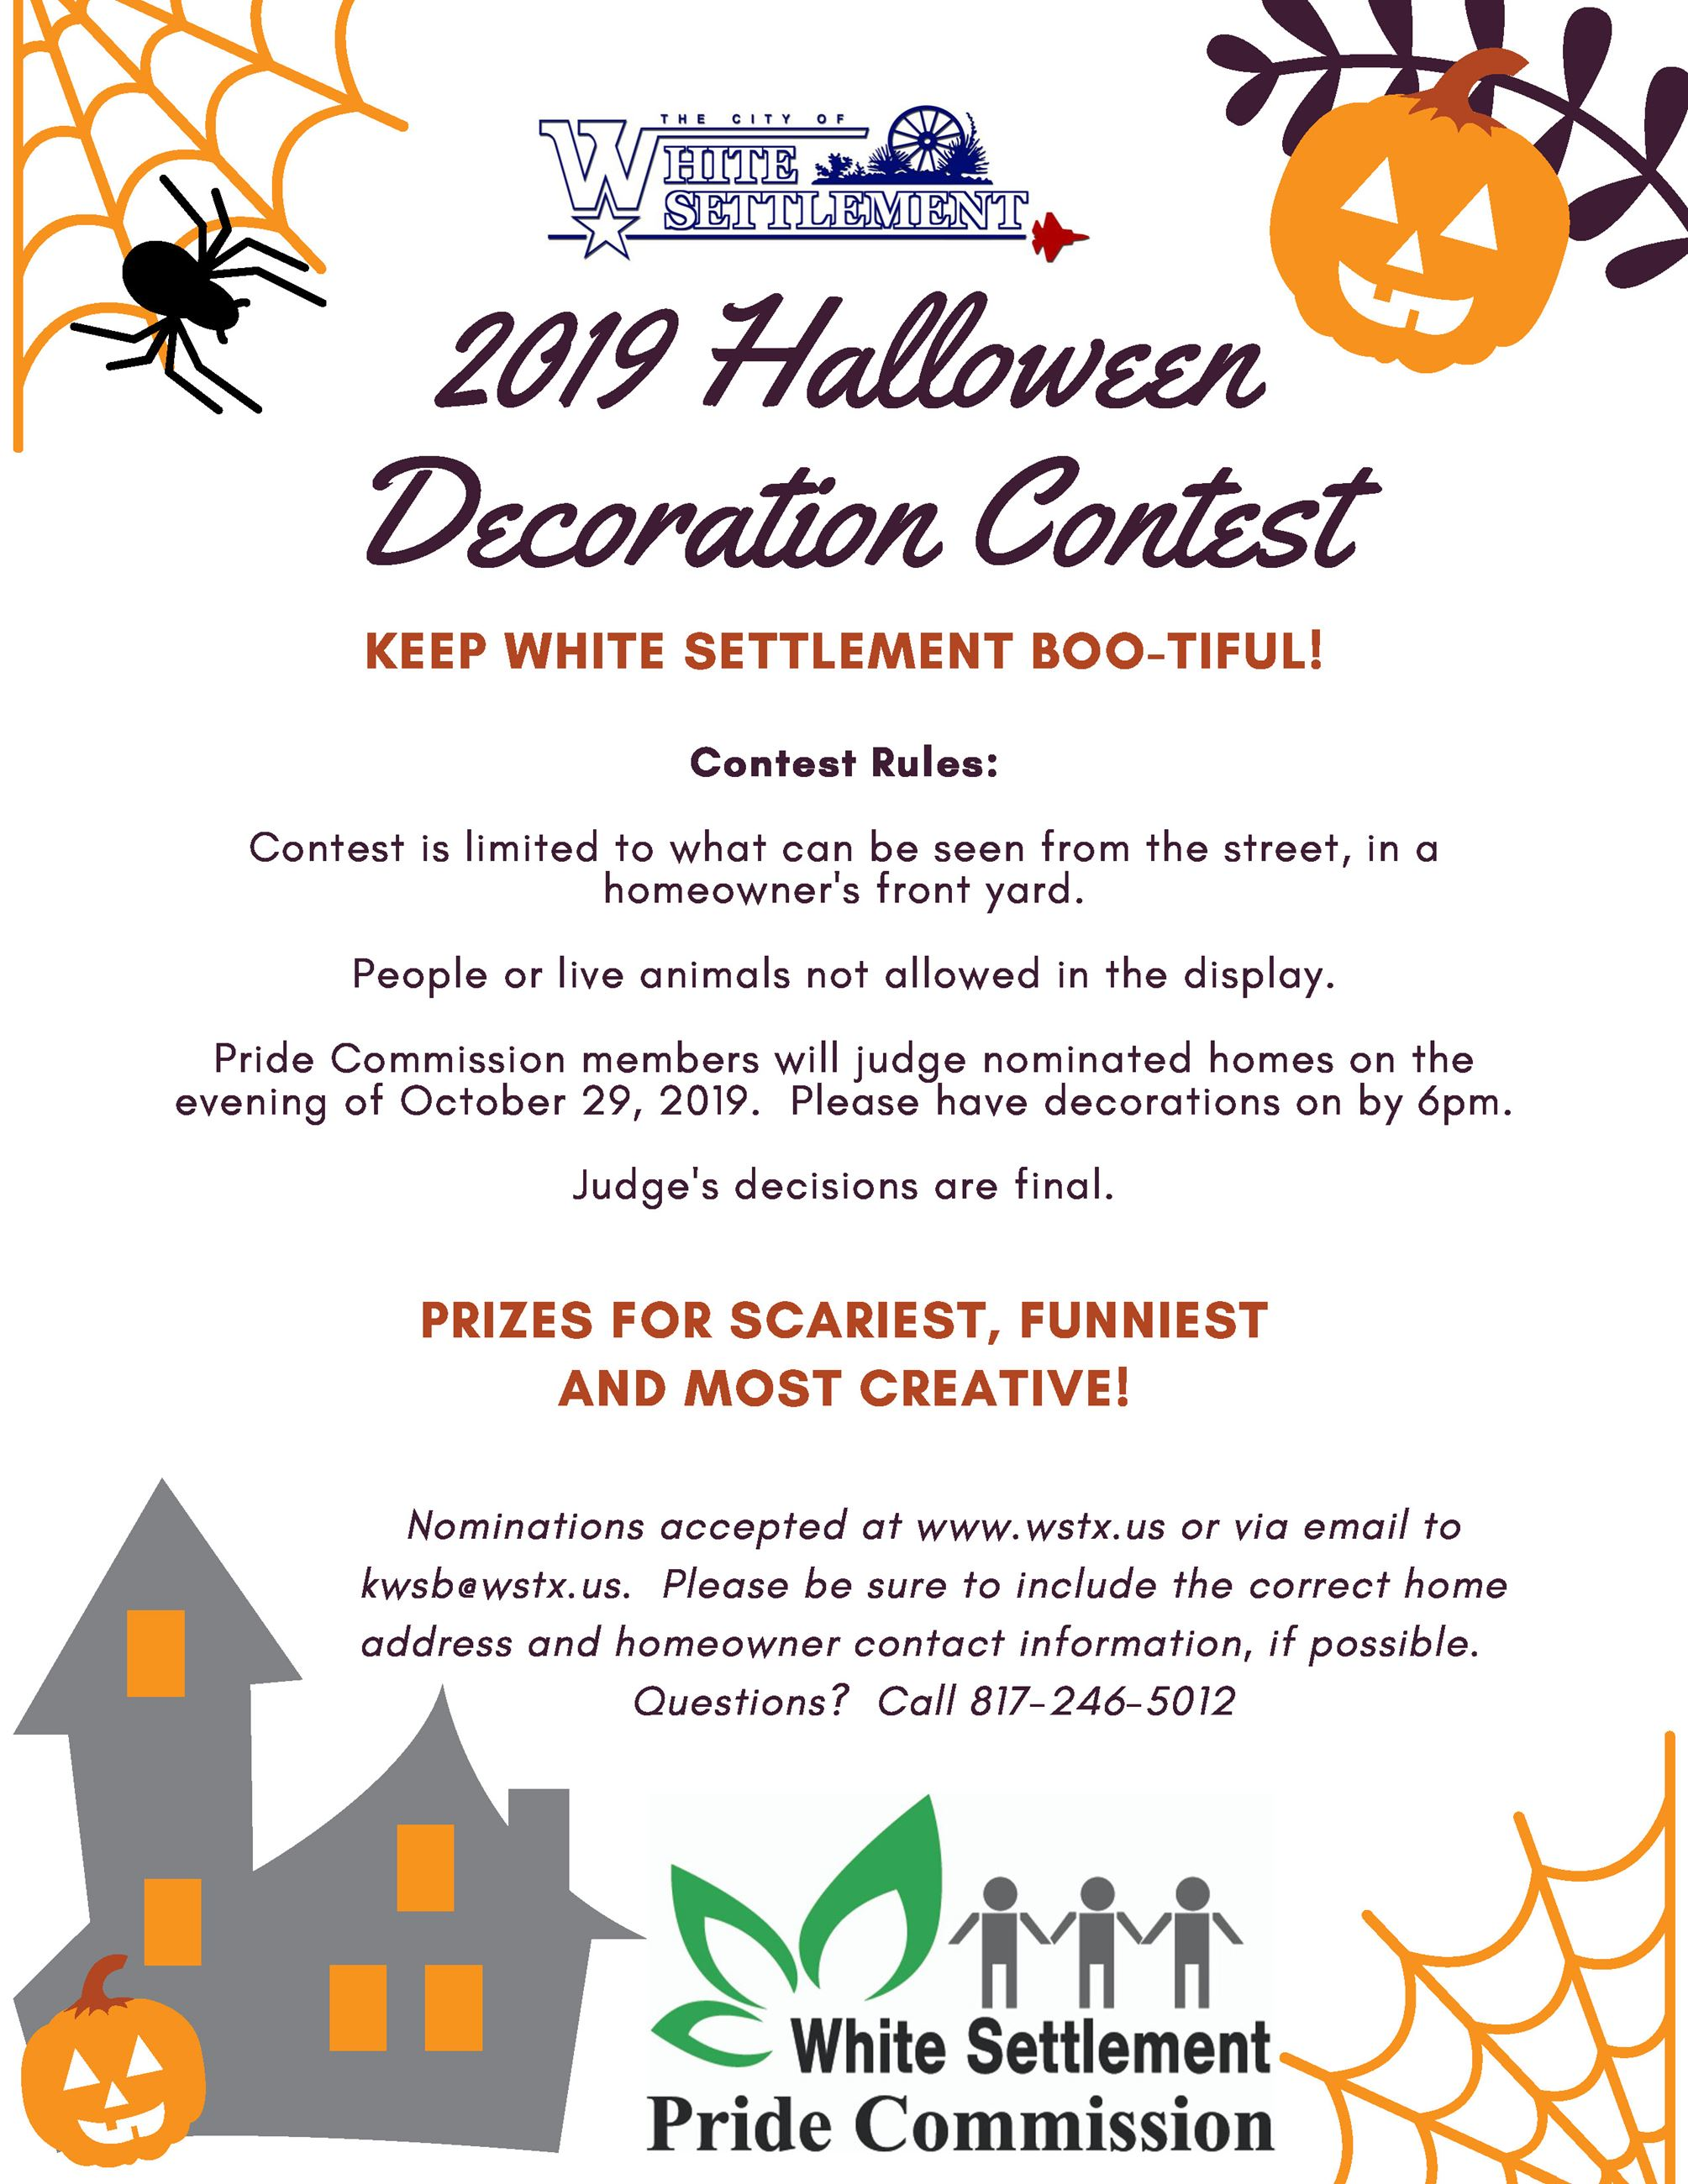 a flyer for a halloween decorations contest